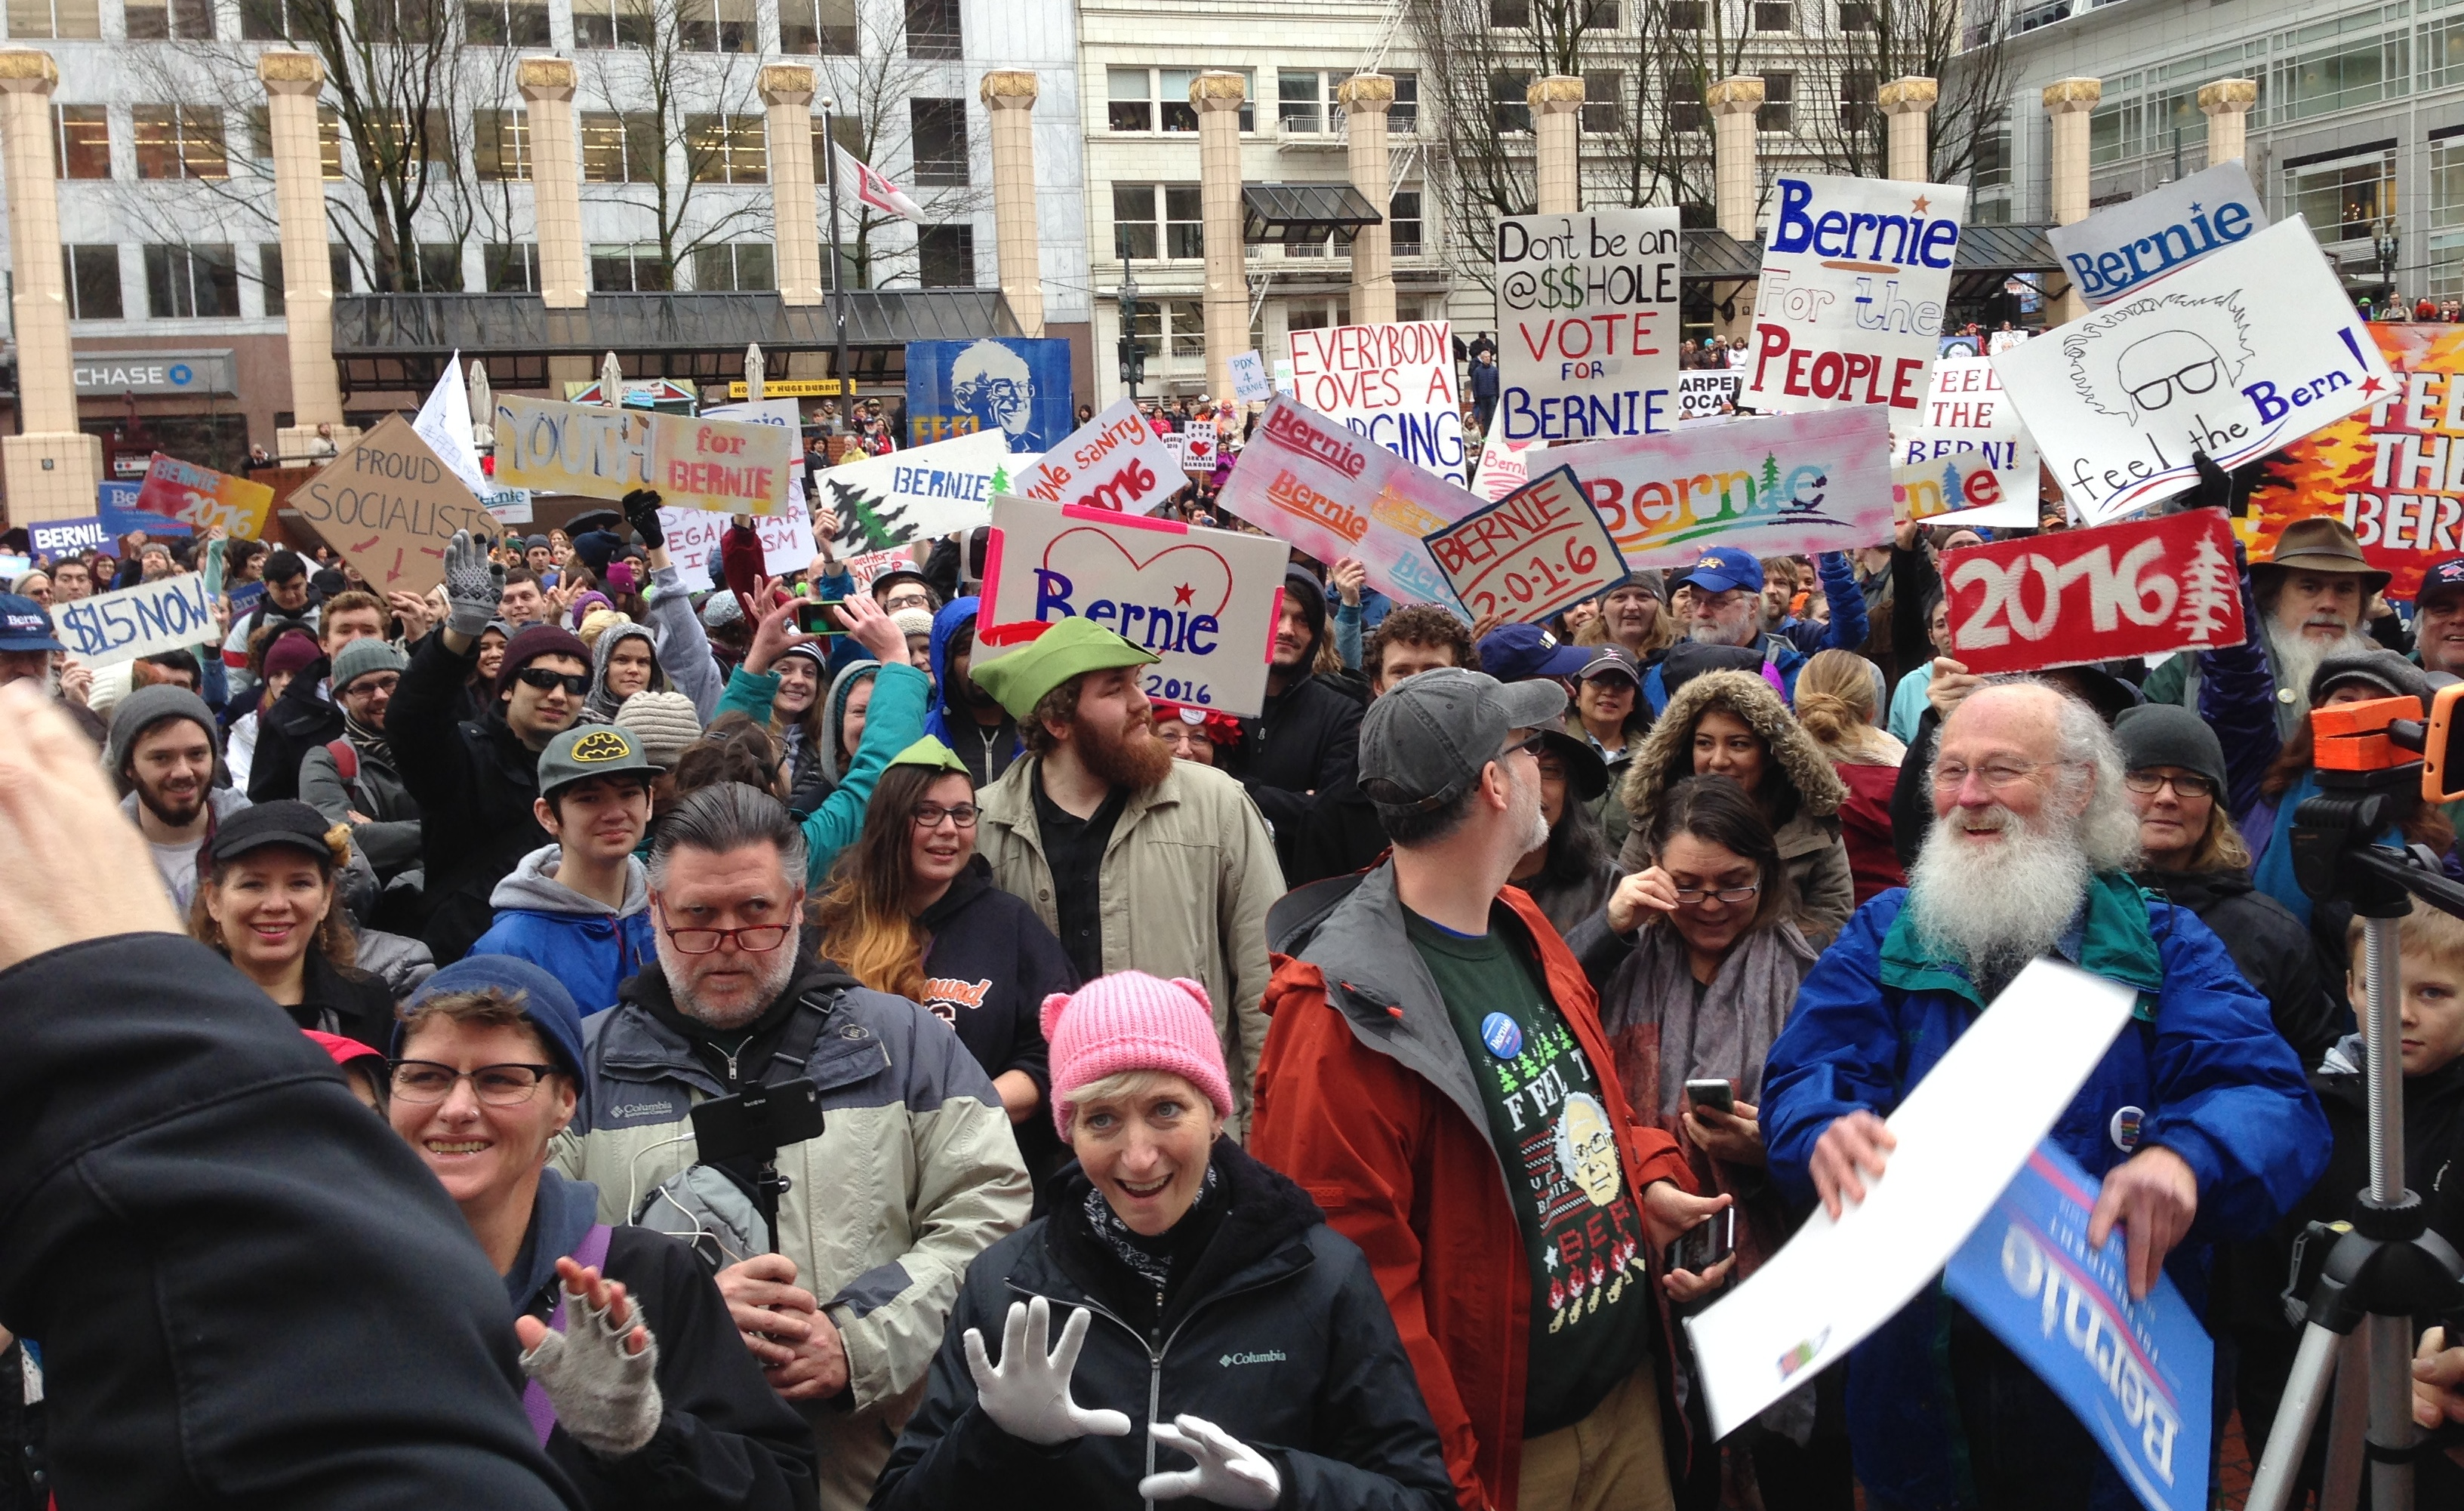 March for Bernie Rally, January 23, 2016